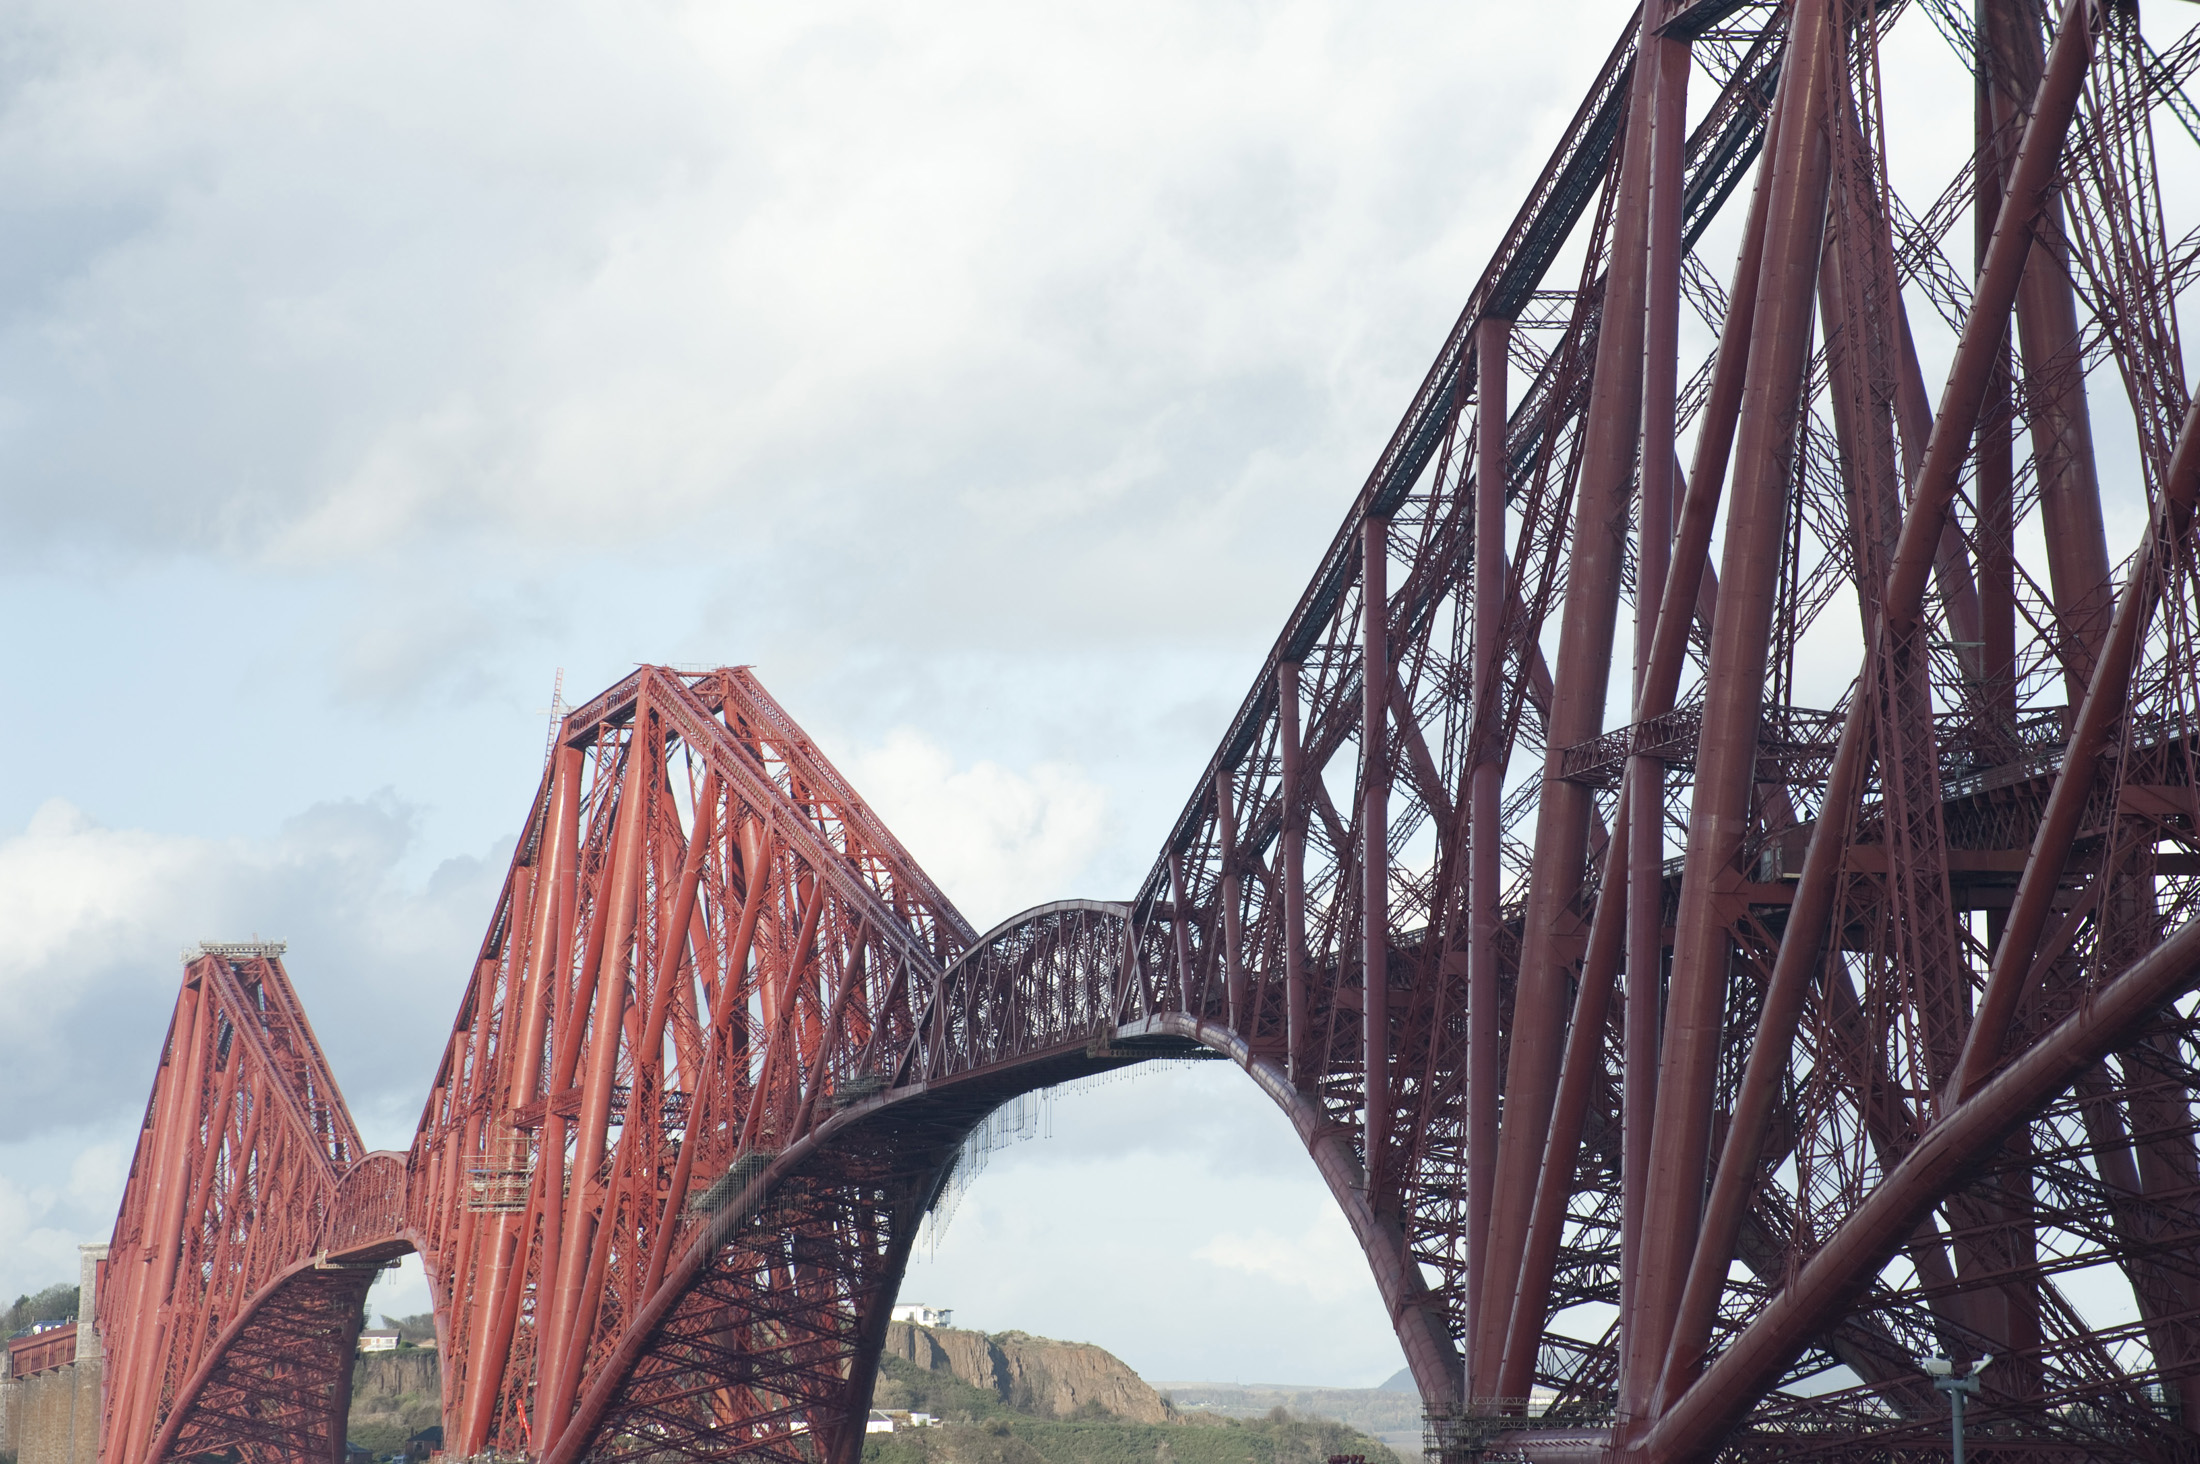 Famous Cantilever bridge crossing the firth of forth, Scotland